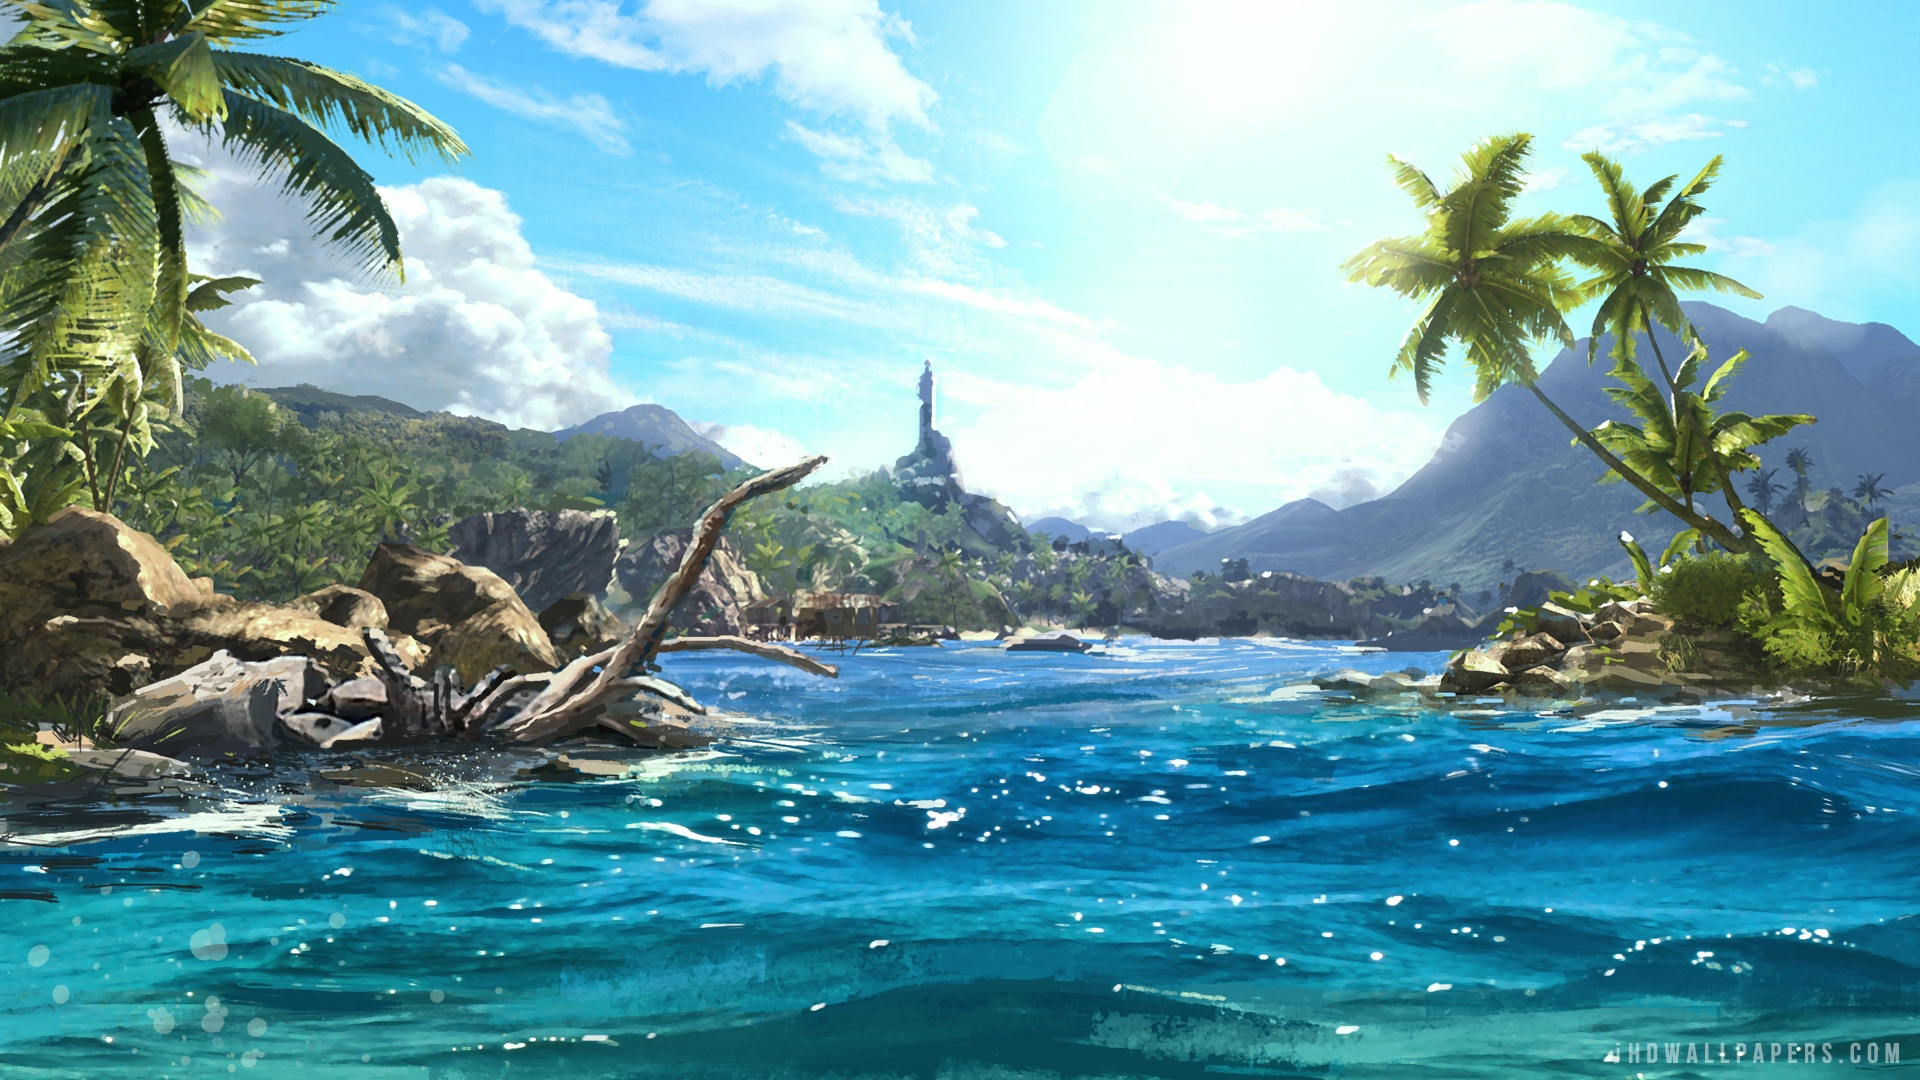 far cry 3 wallpapers wallpapersafari. Black Bedroom Furniture Sets. Home Design Ideas